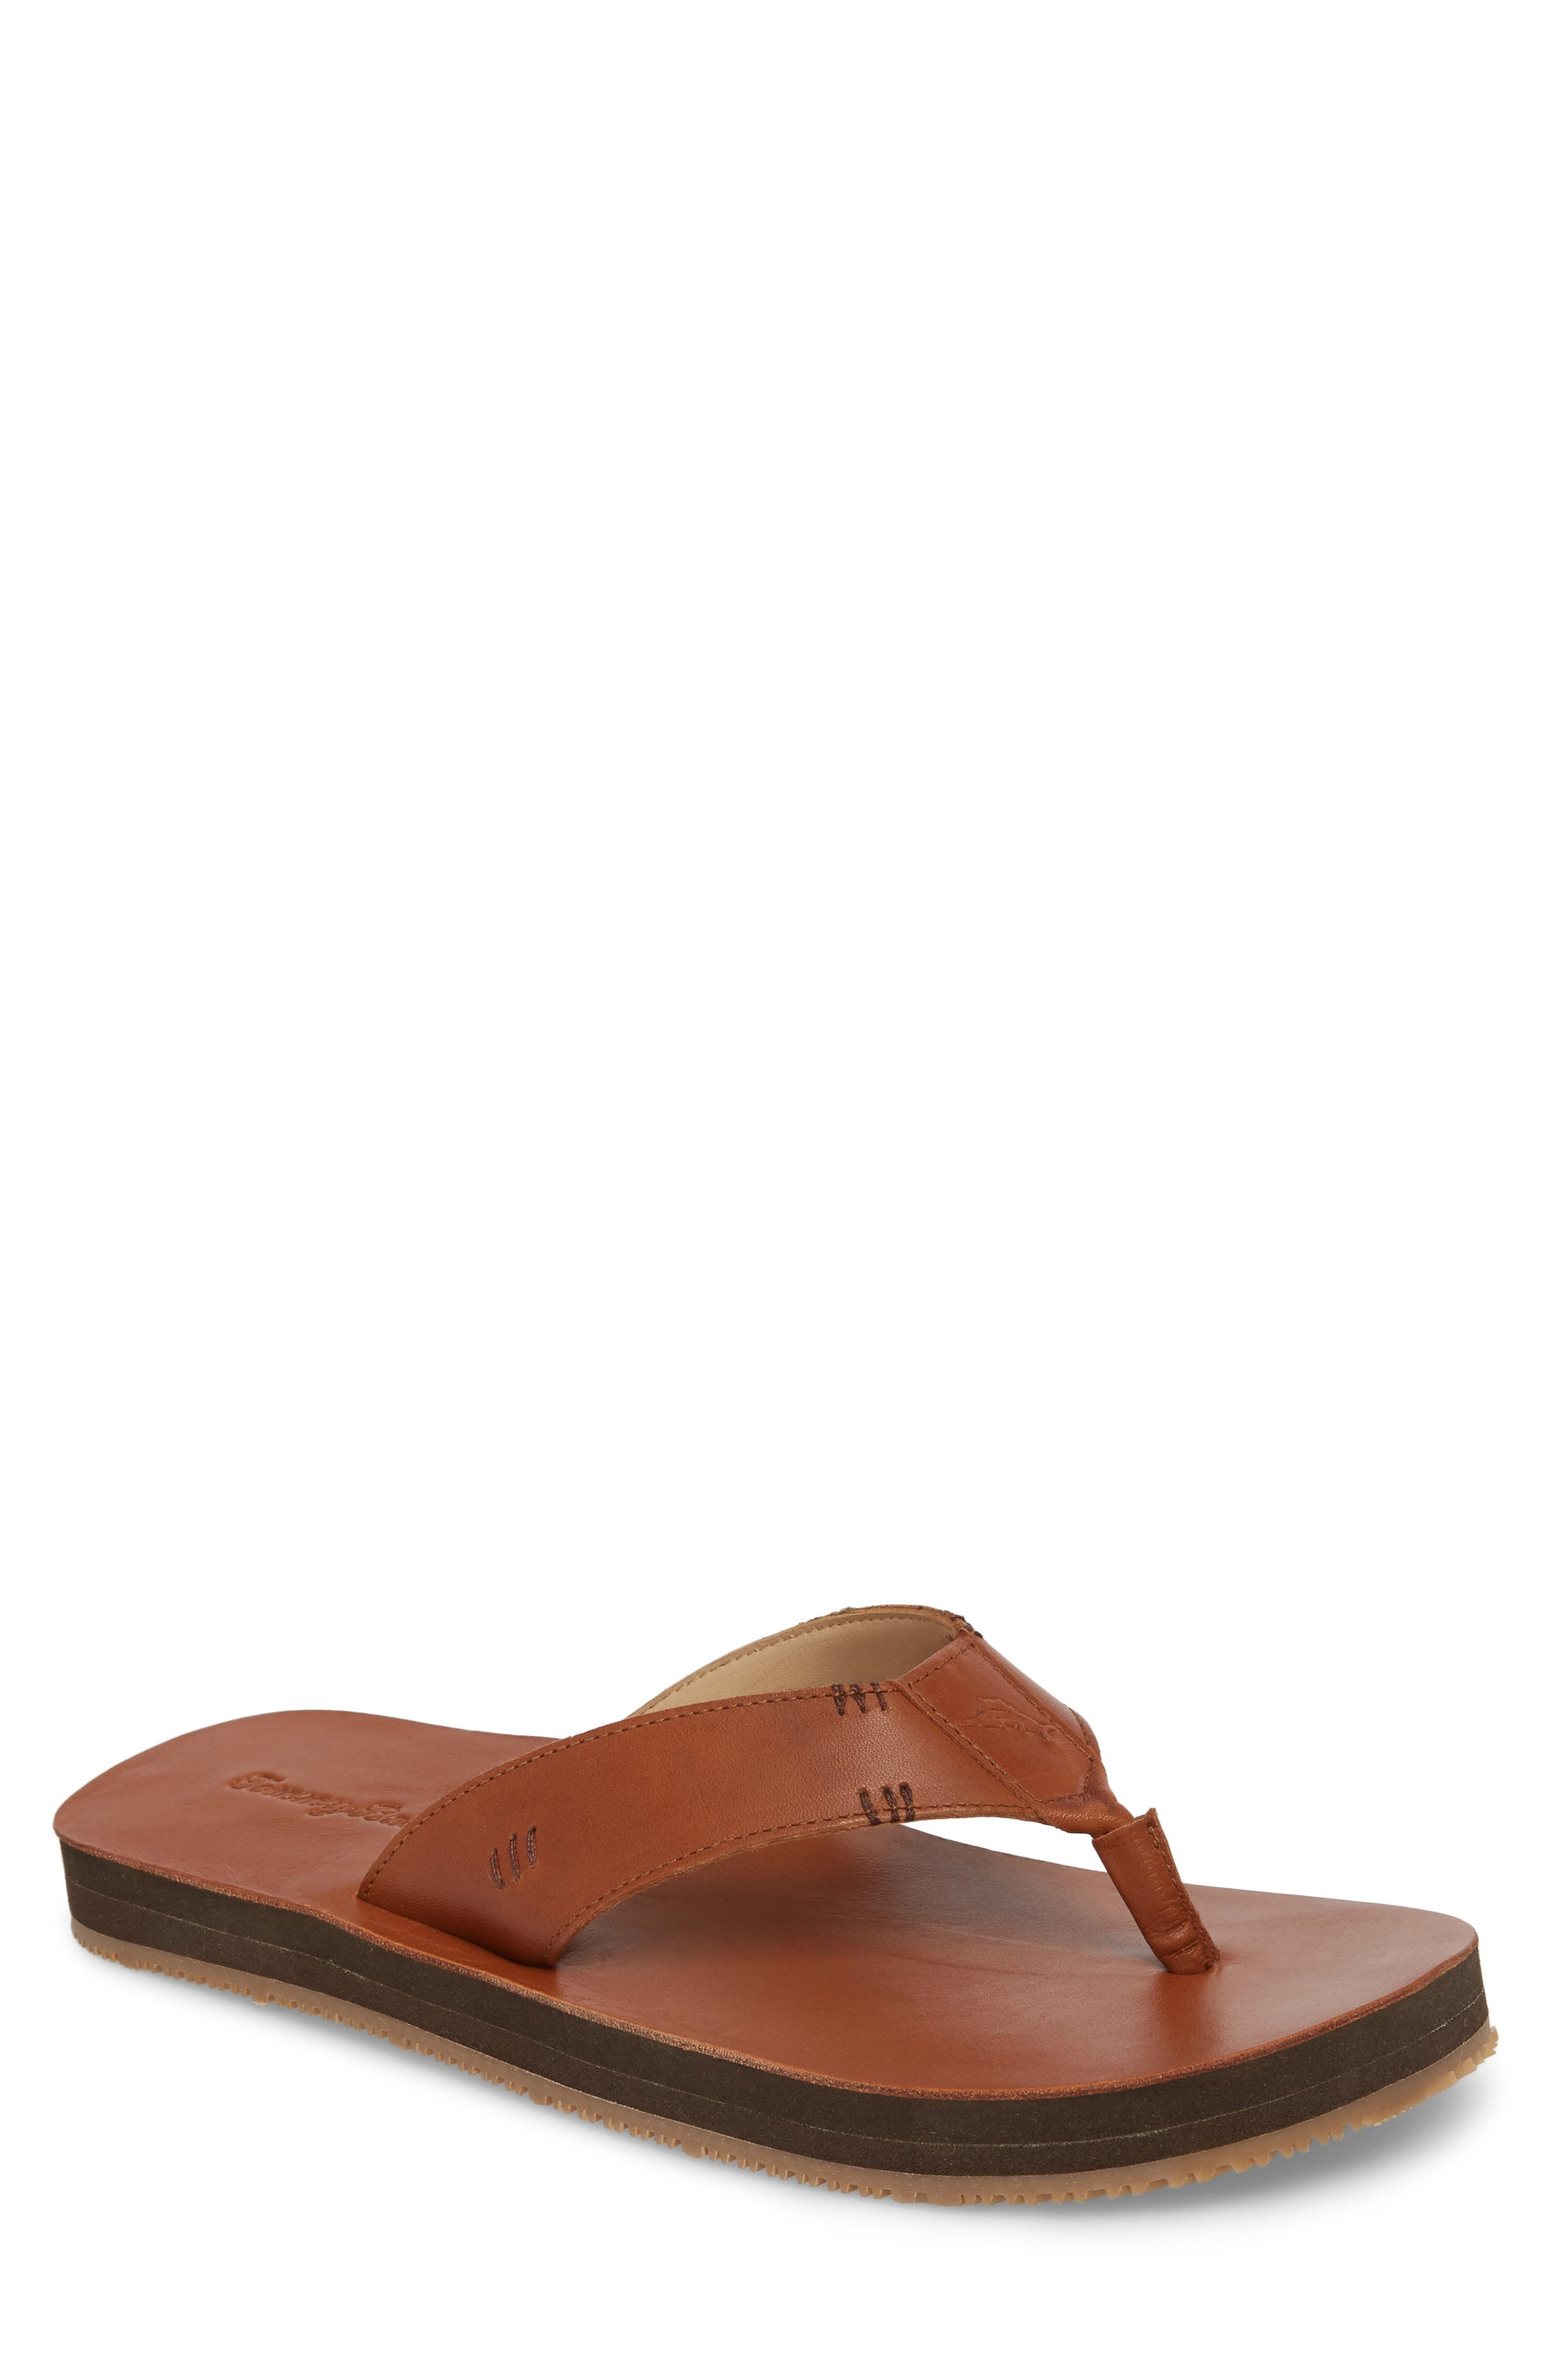 Adderly Flip Flop,                         Main,                         color, Tan Leather